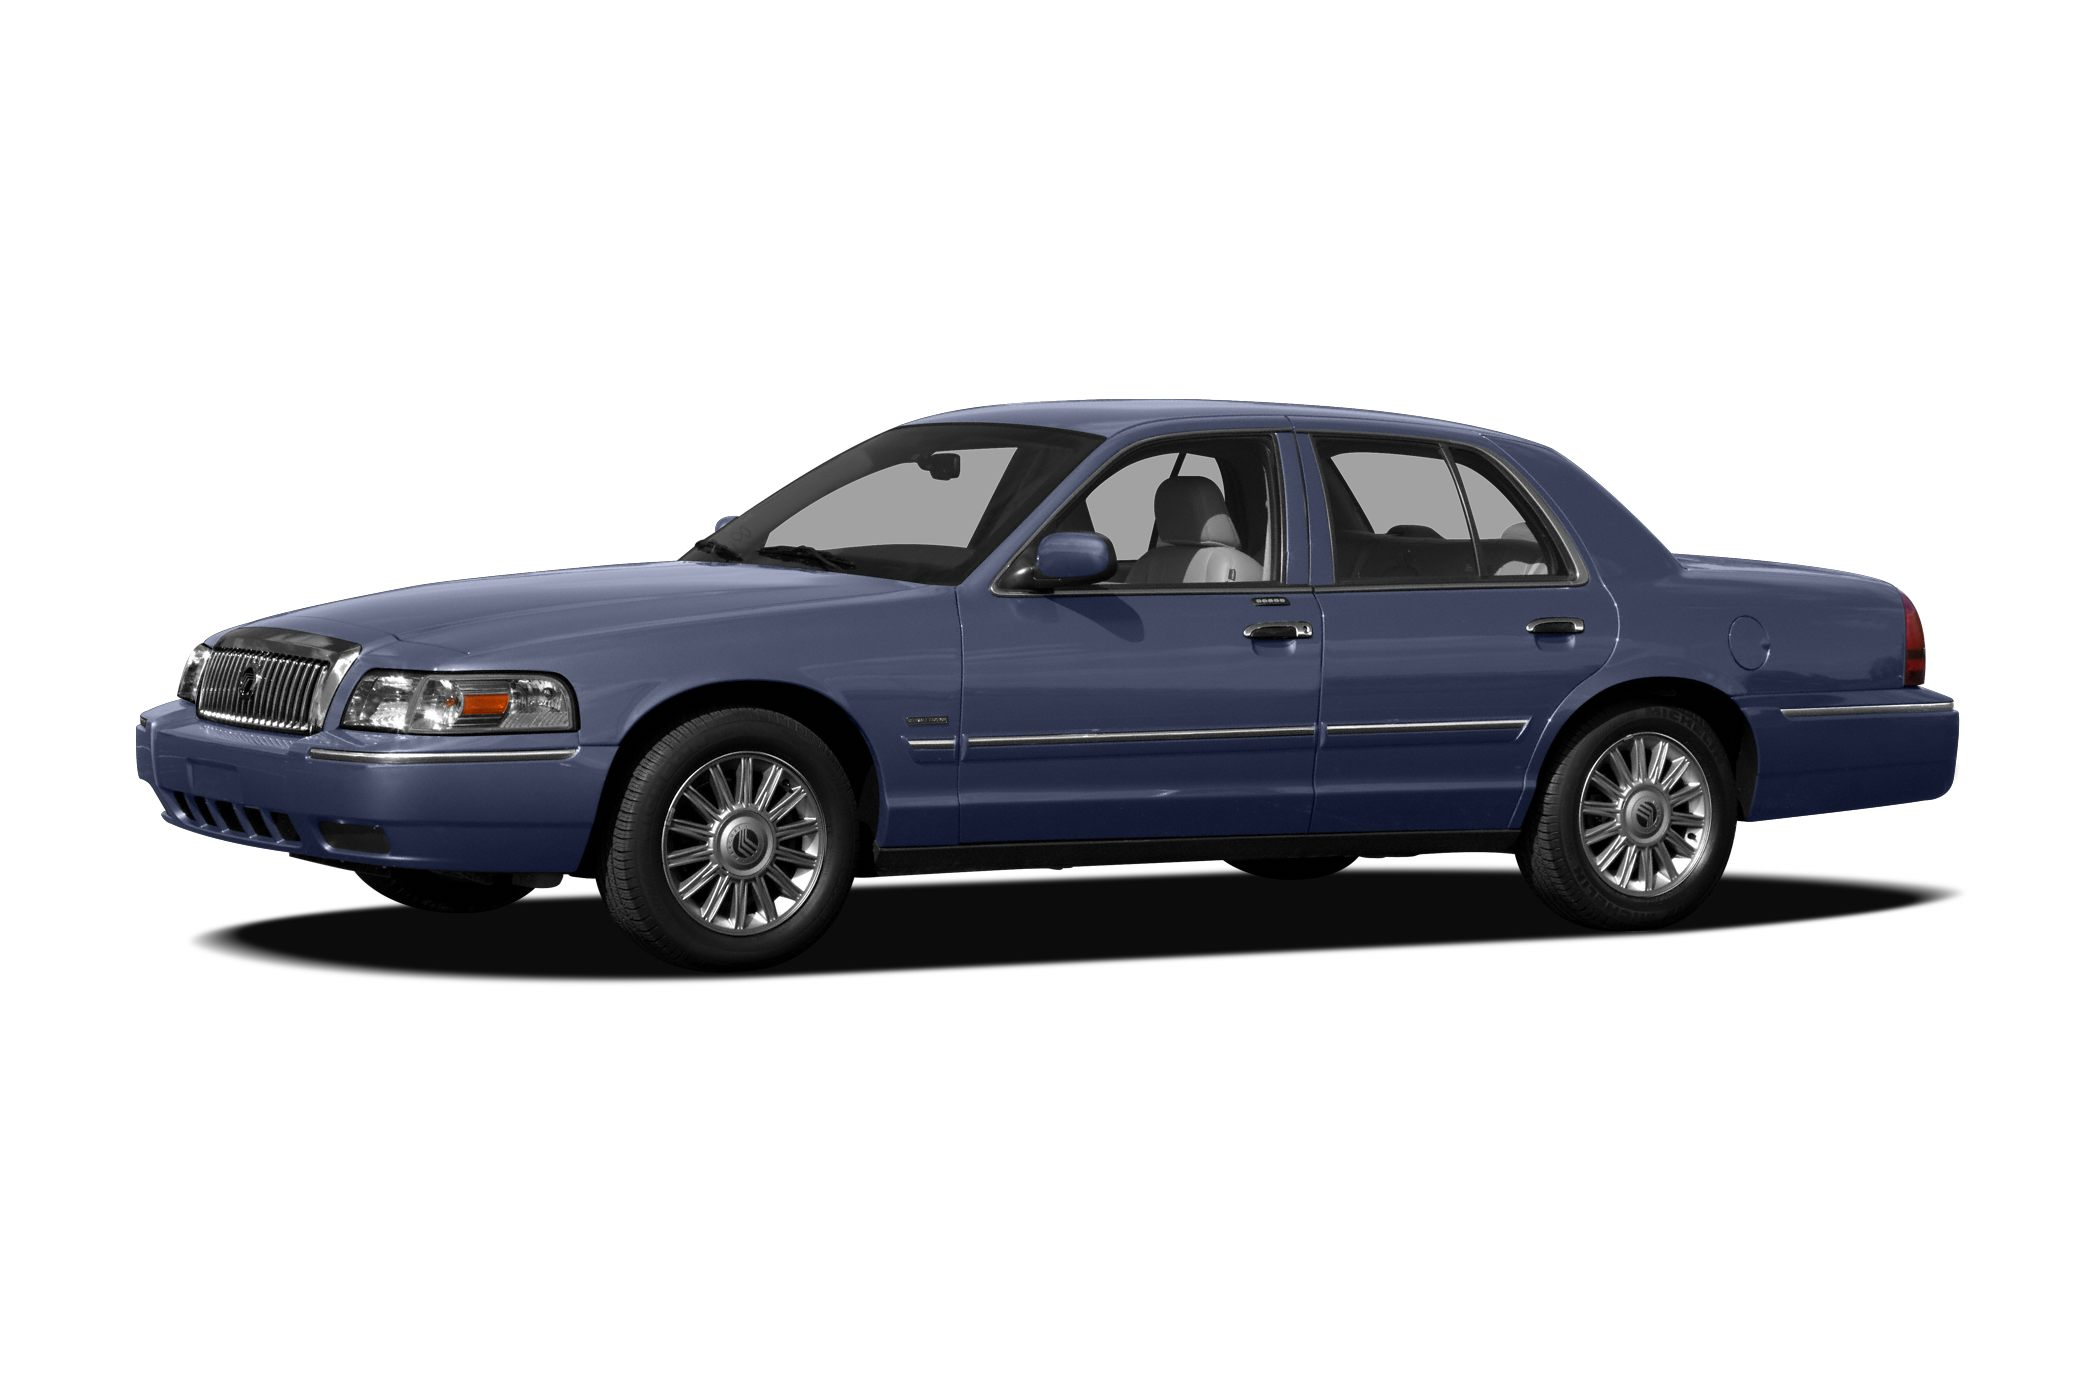 2007 Mercury Grand Marquis LS Sedan for sale in Little Rock for $11,500 with 78,000 miles.